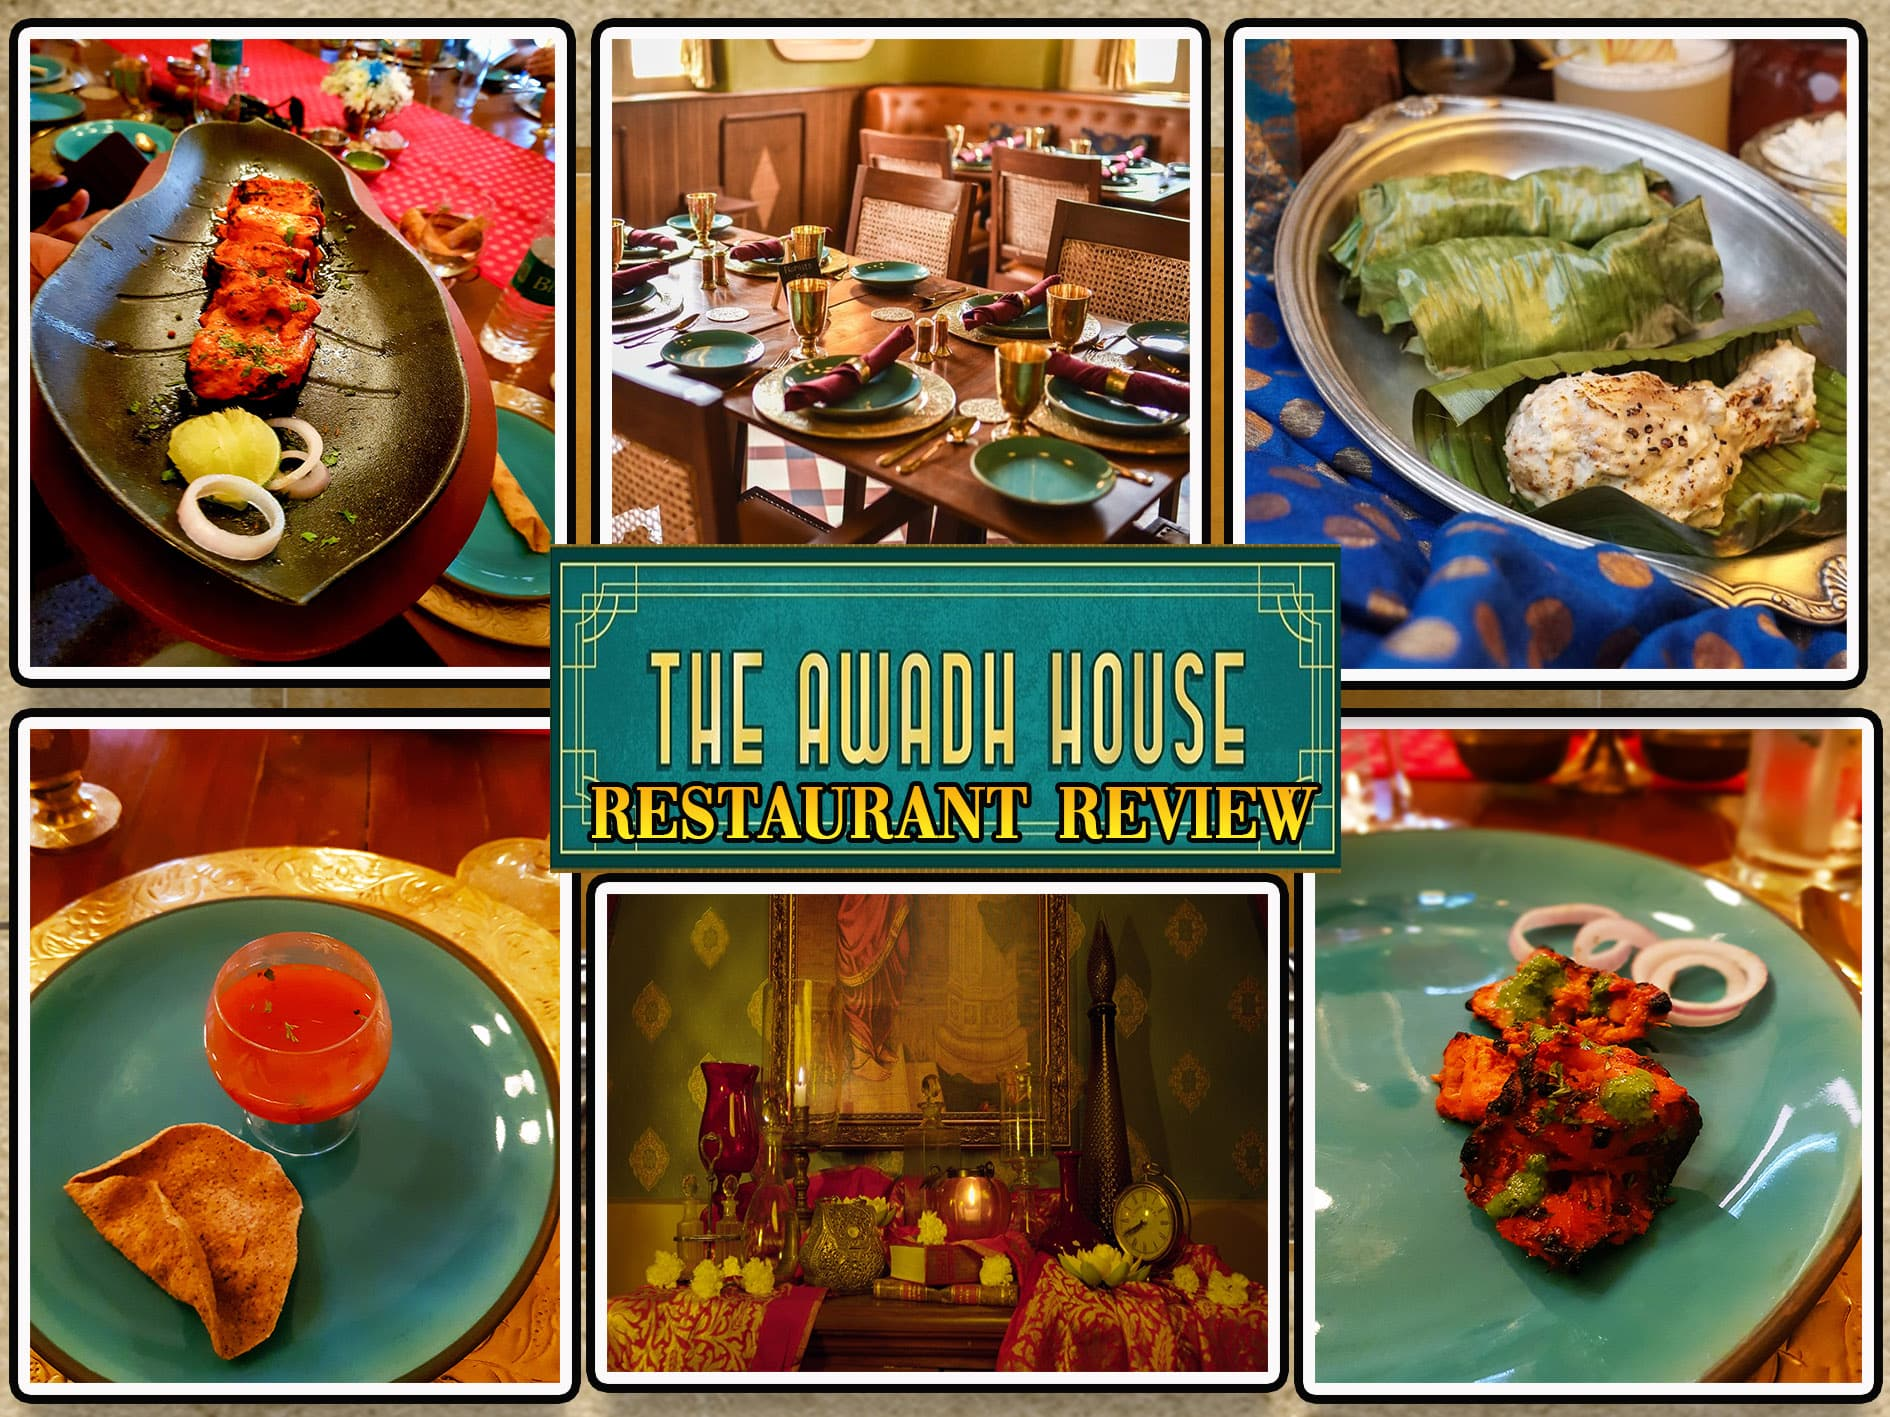 The Awadh House Restaurant Review - One Epic Road Trip Blog